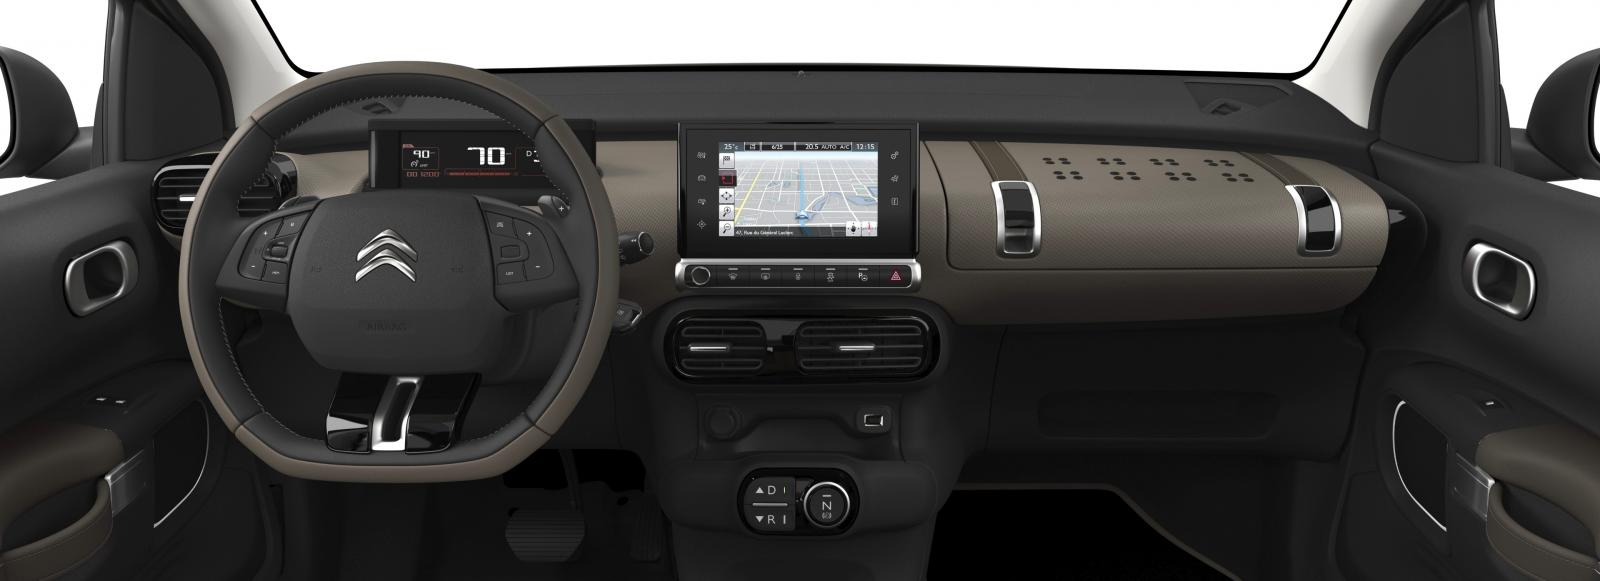 C4 Cactus Shine edition 2014 dash car